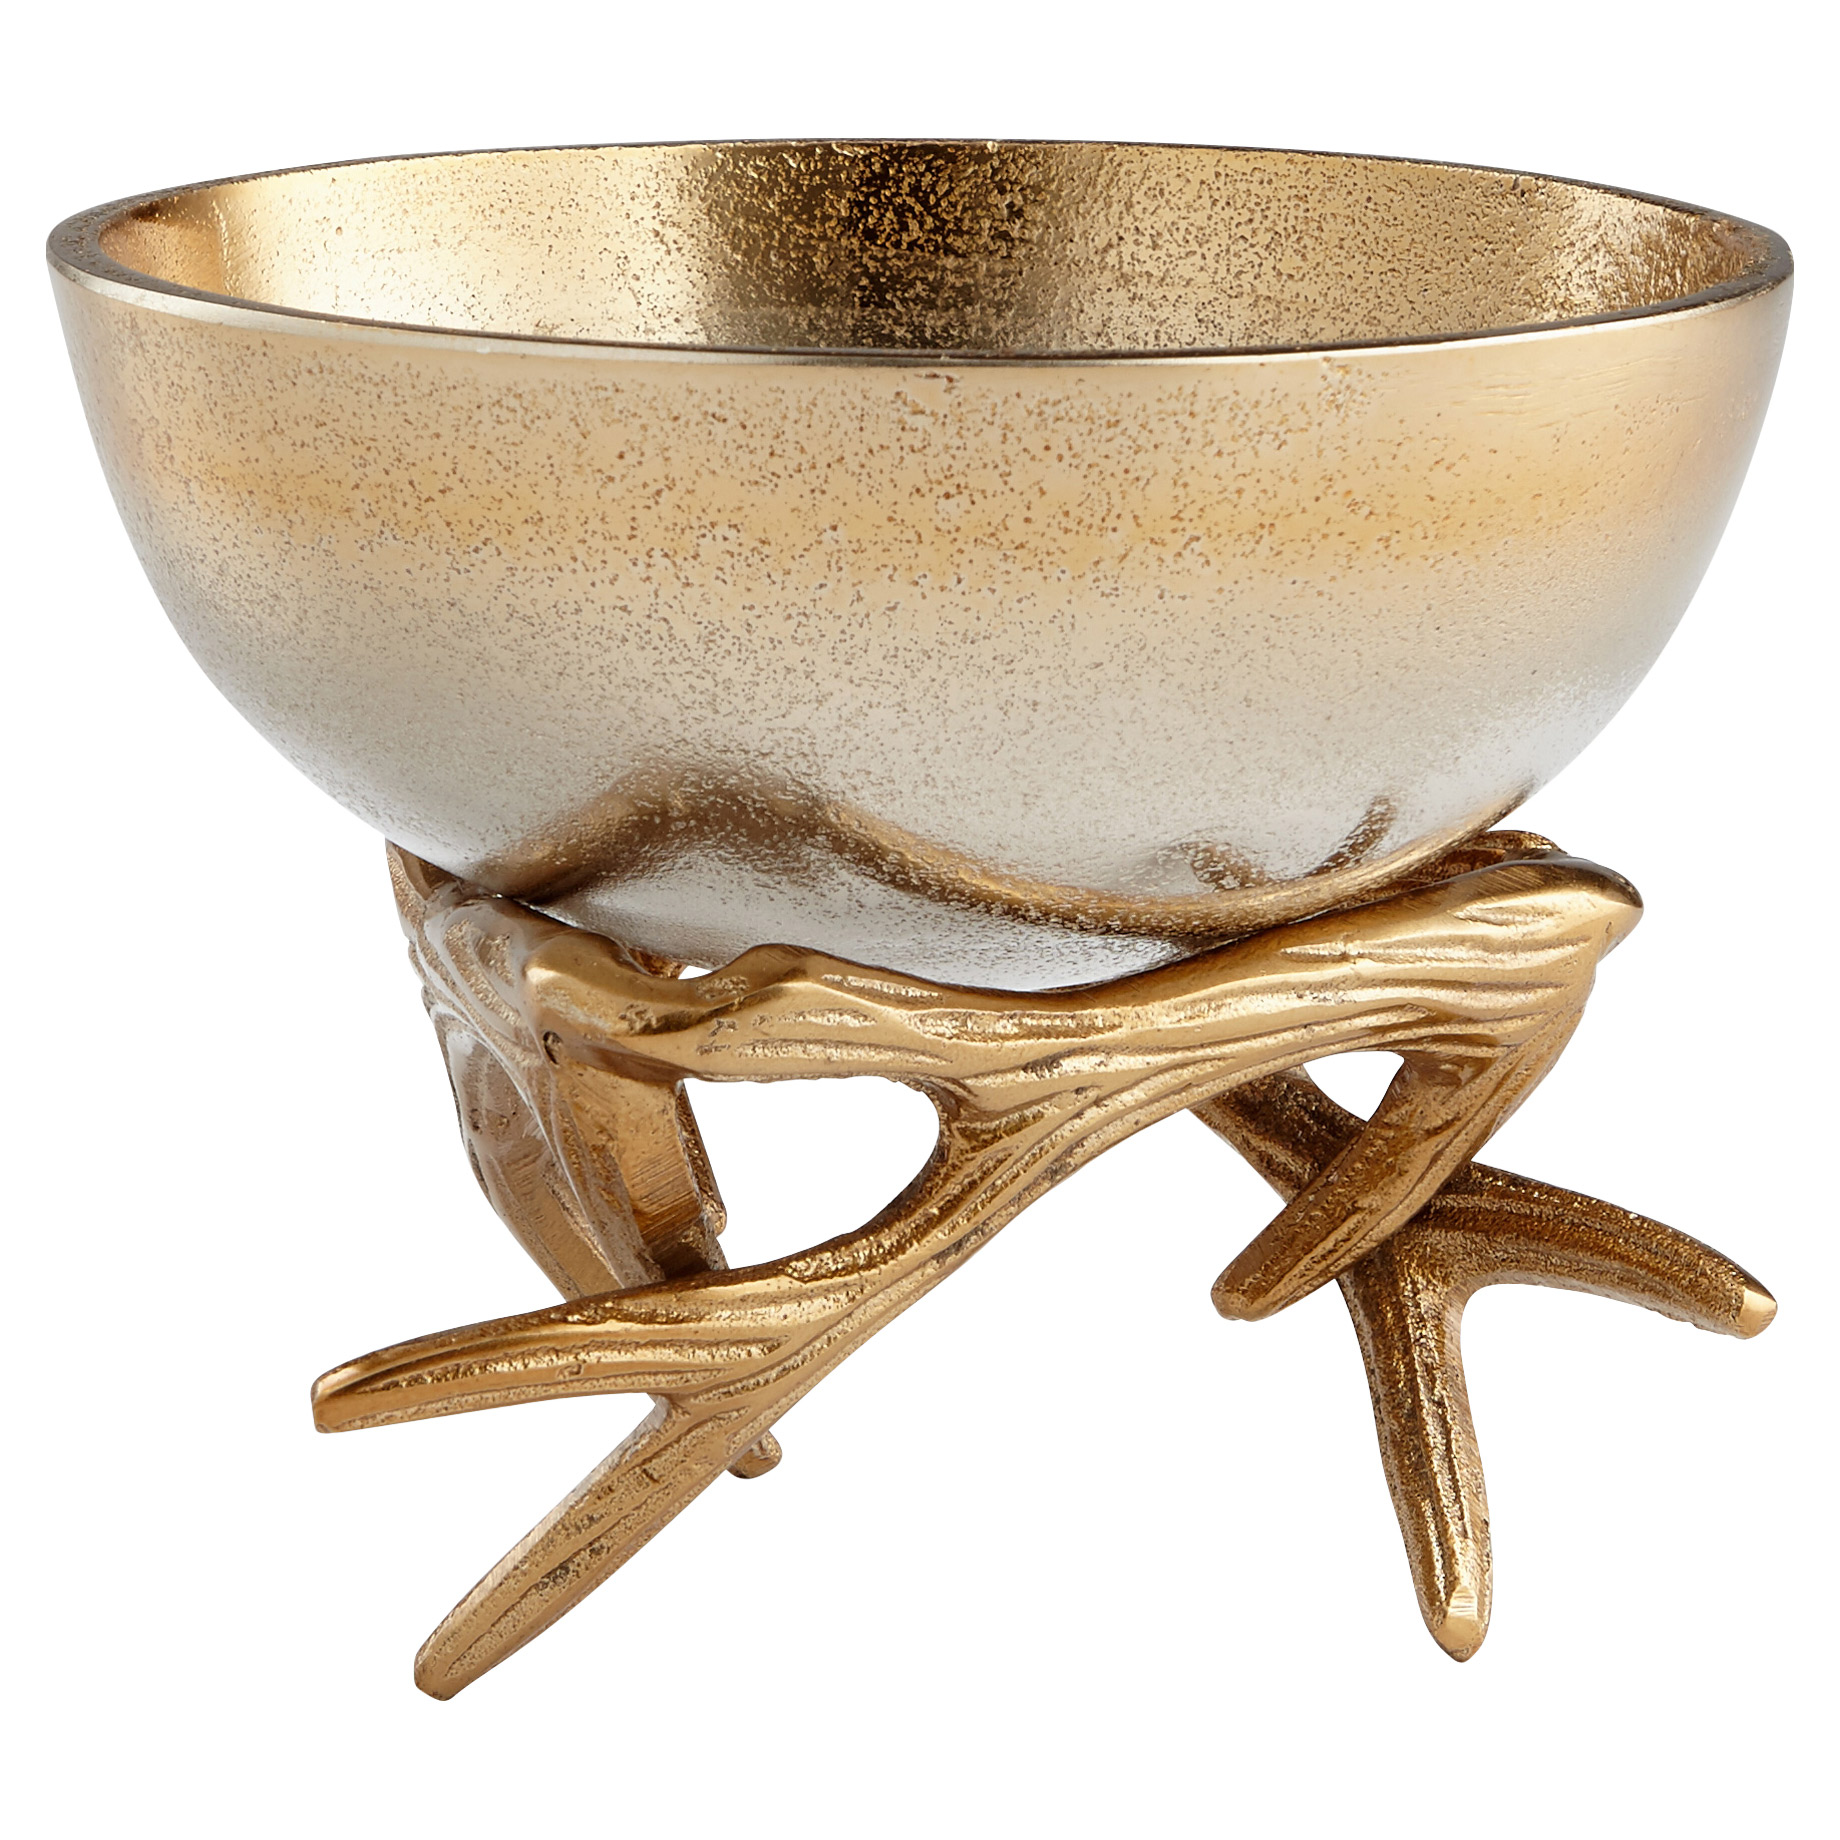 Dasher Metallic Ombre Gold Antler Bowl - Small